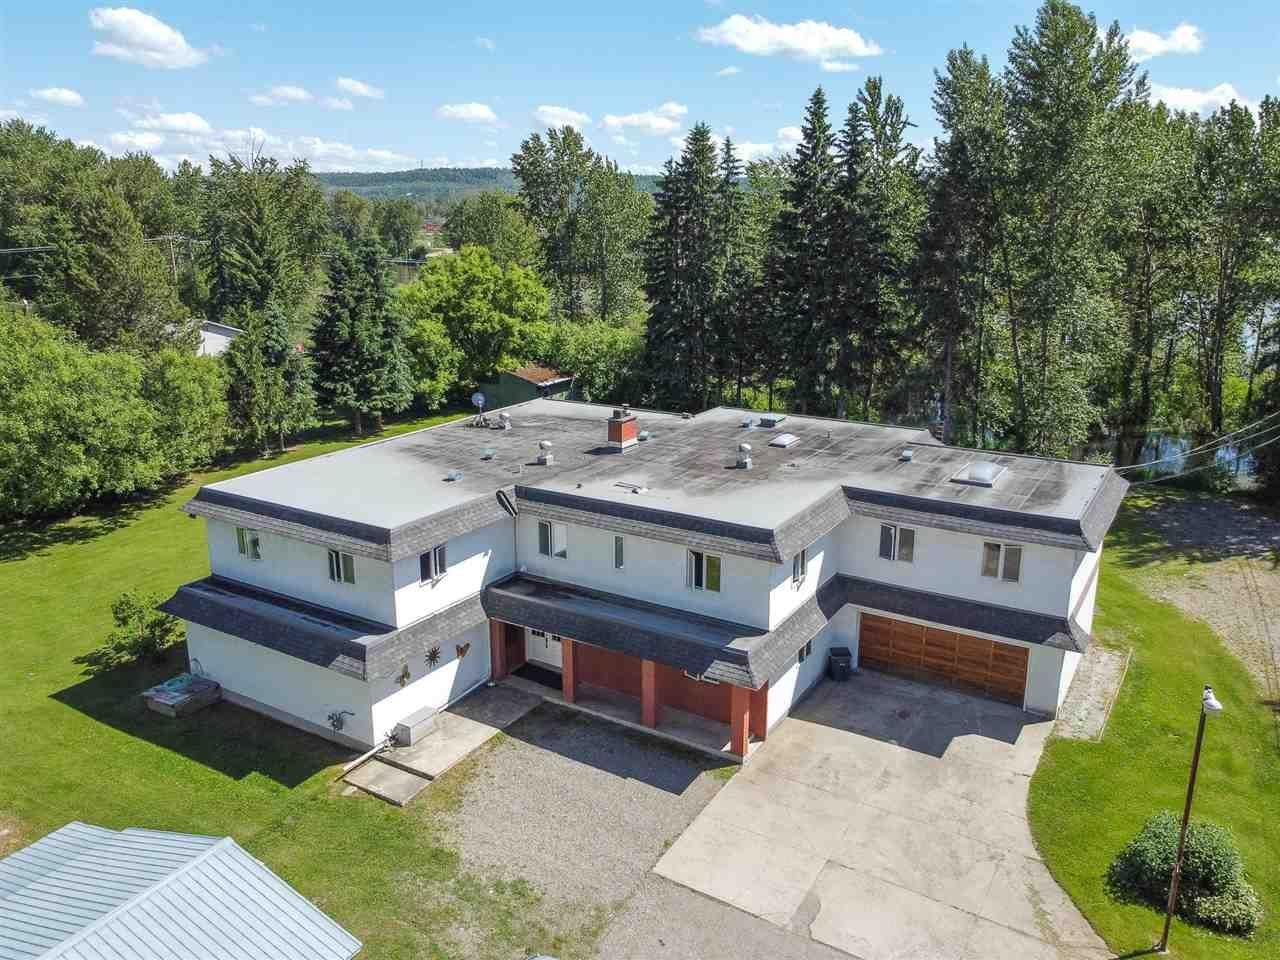 """Main Photo: 540 CUTBANK Road in Prince George: Nechako Bench House for sale in """"NORTH NECHAKO"""" (PG City North (Zone 73))  : MLS®# R2616109"""